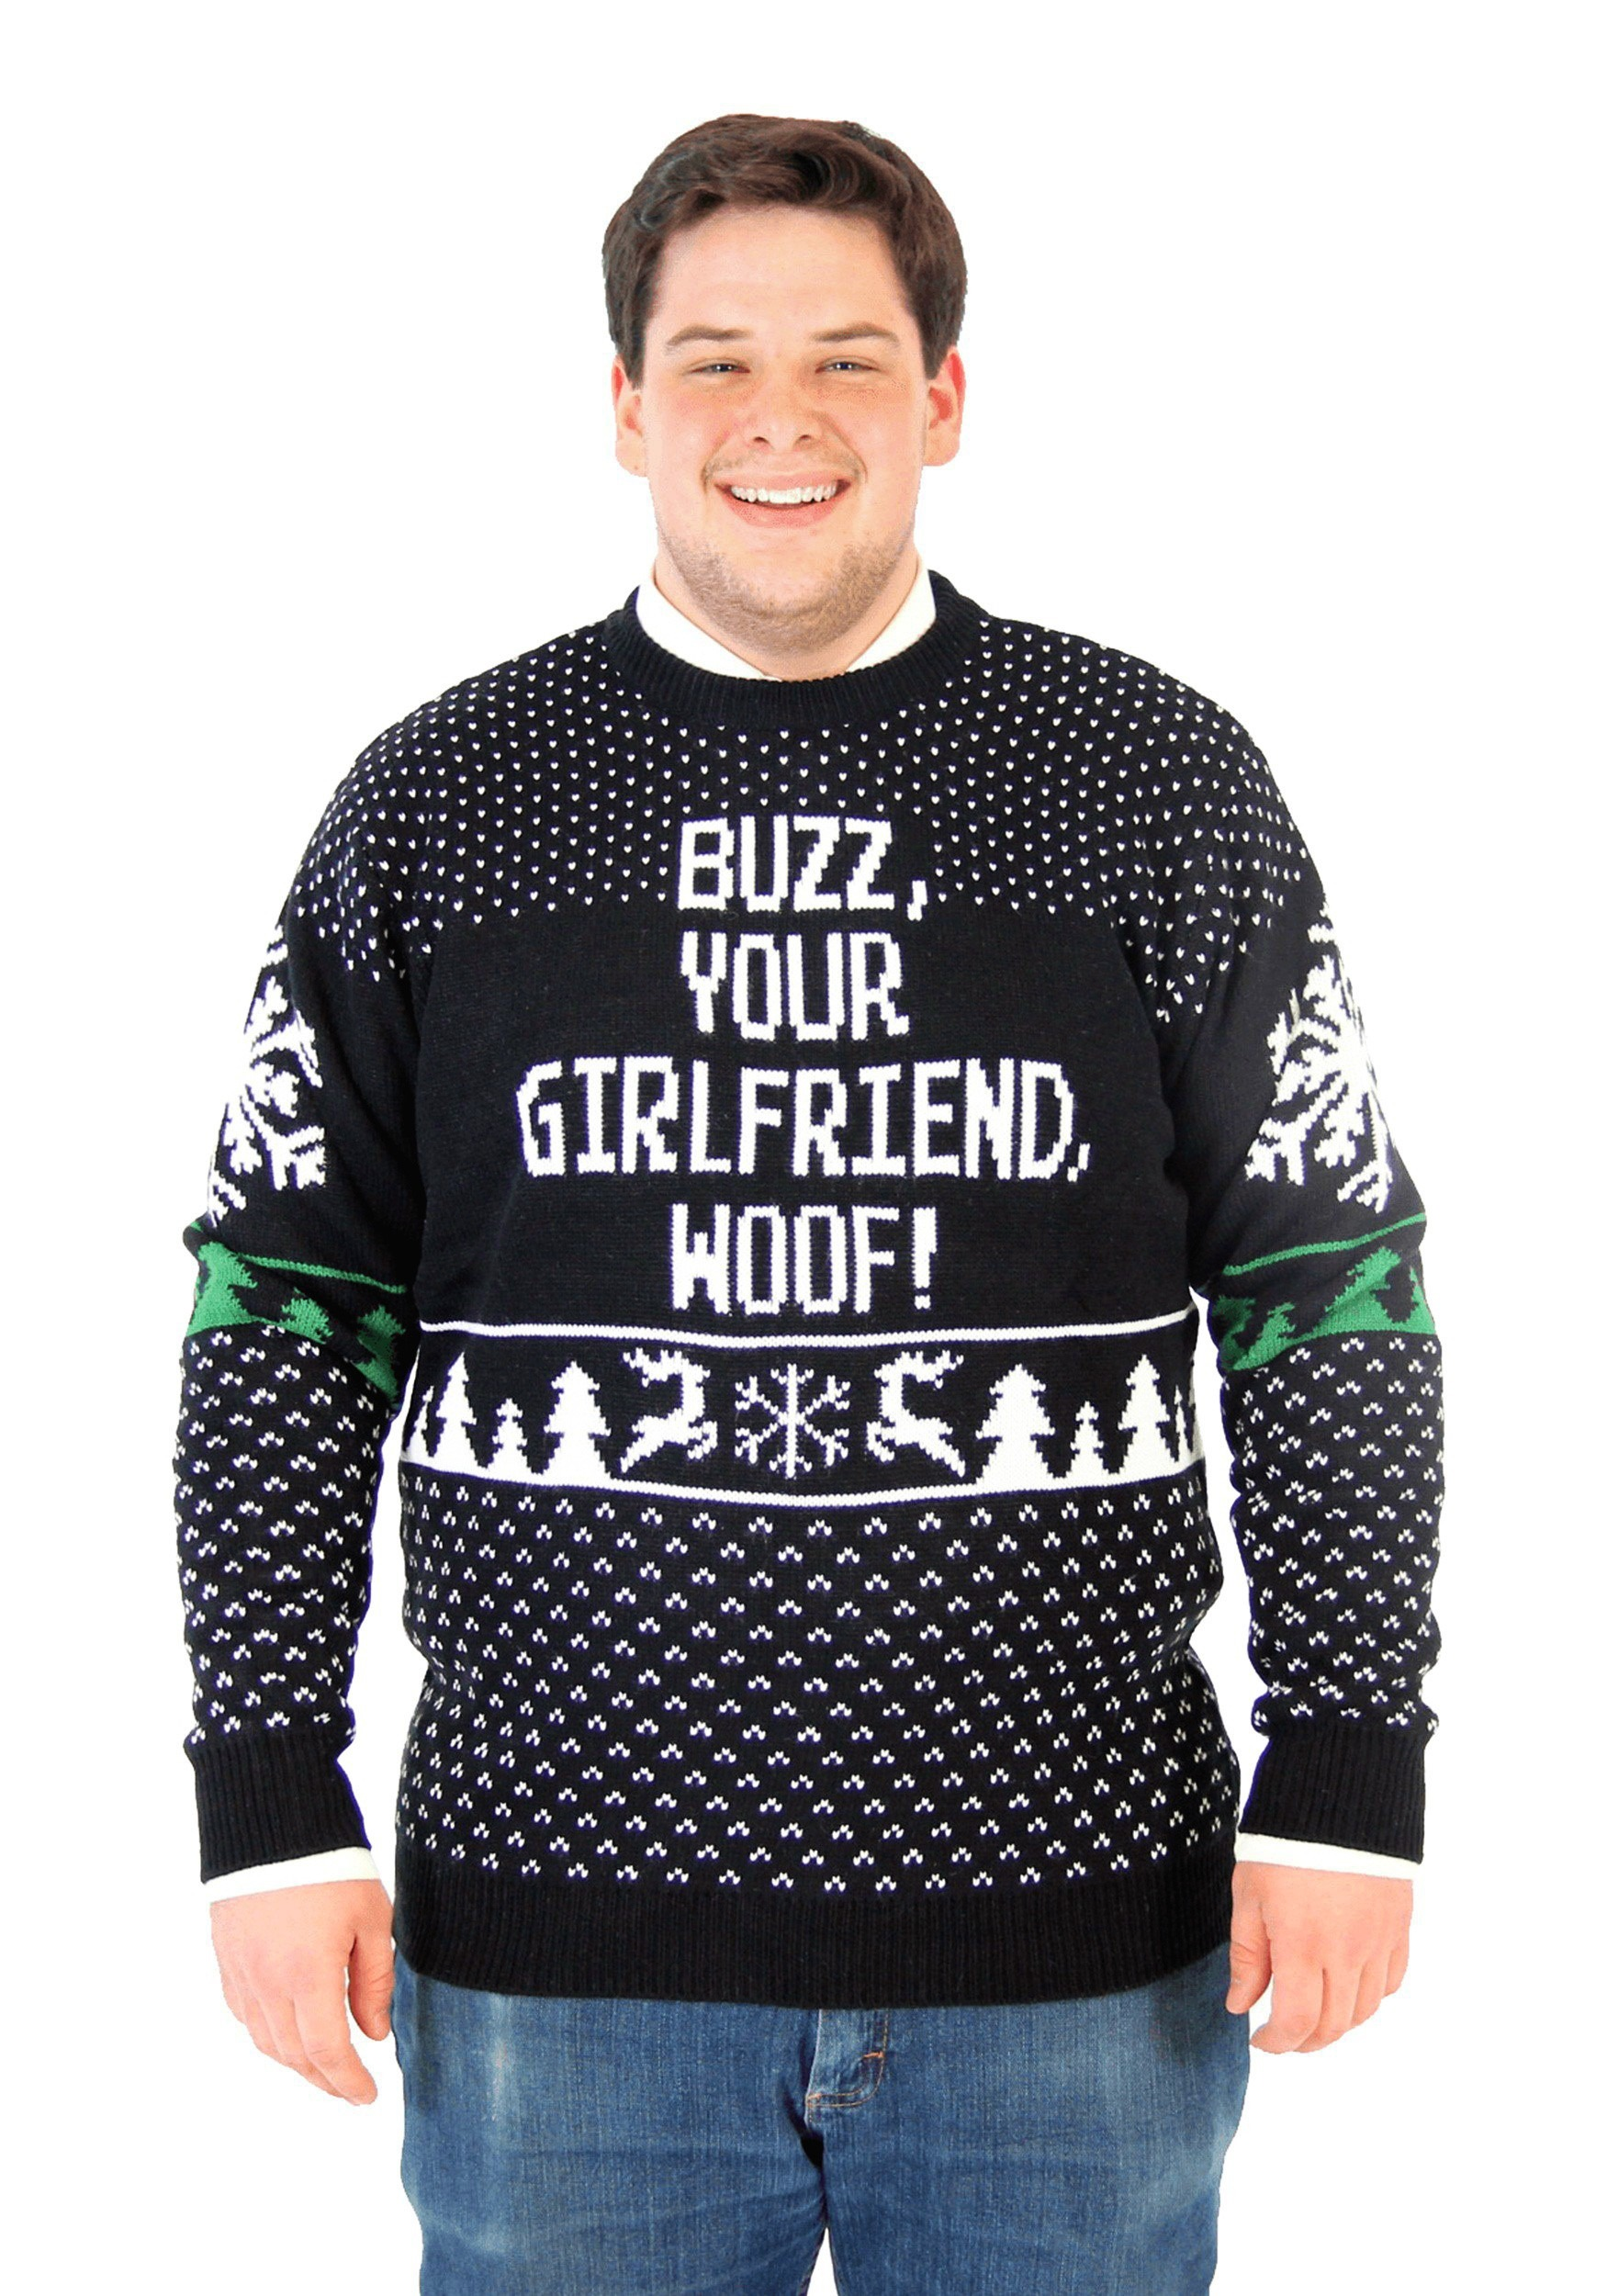 Plus Size Ugly Christmas Sweater.Home Alone Buzz Your Girlfriend Woof Plus Size Ugly Sweater